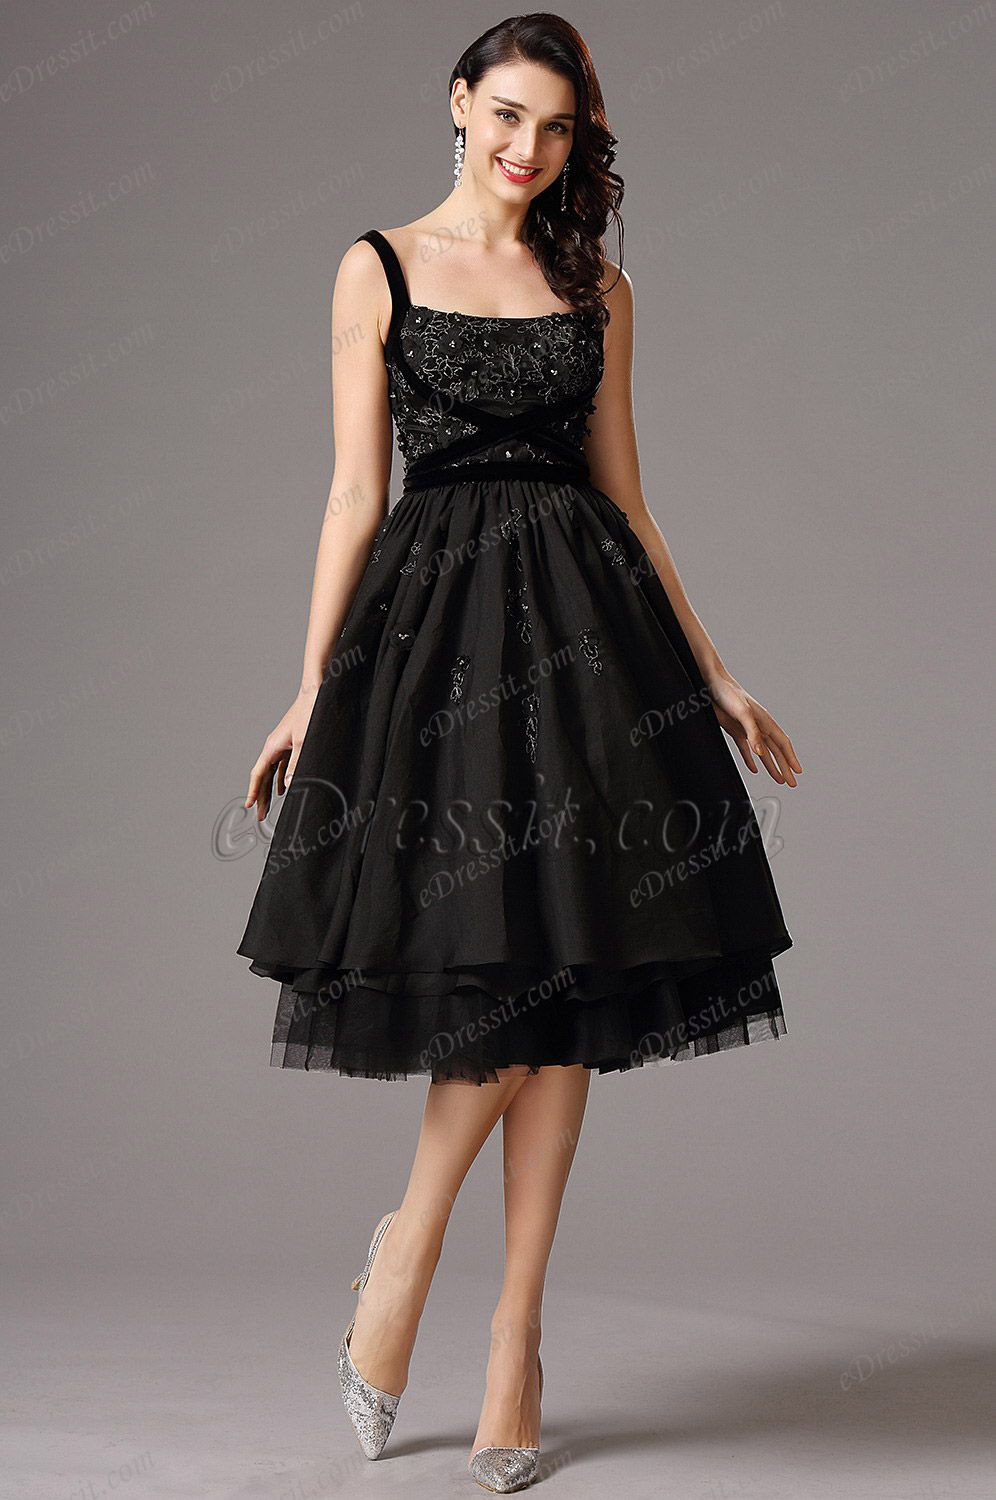 Flattering Black Vintage Layered Tail Dress Party